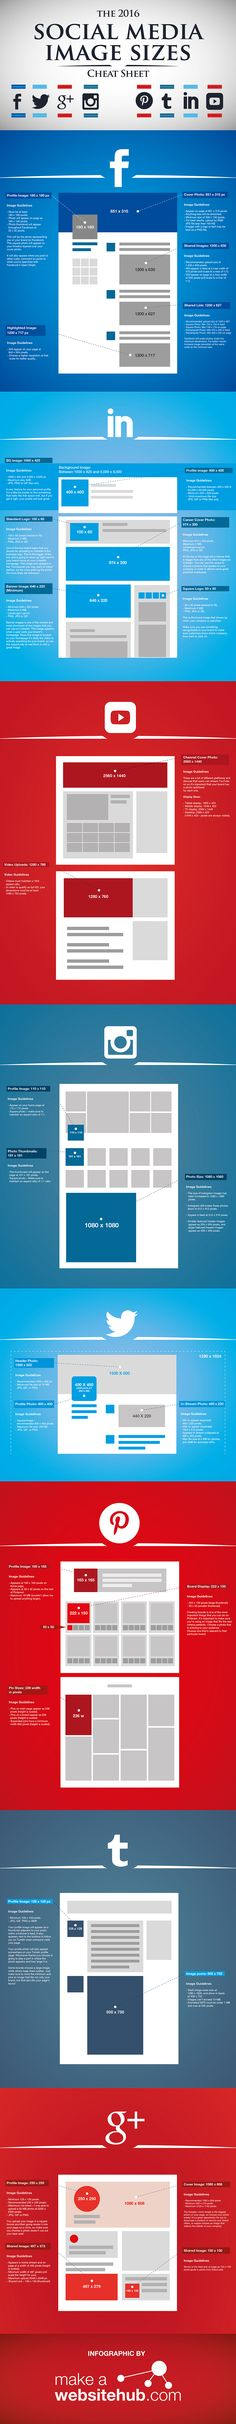 Such a great resource for bloggers: 2016 Social Media Image Sizes Cheat Sheet